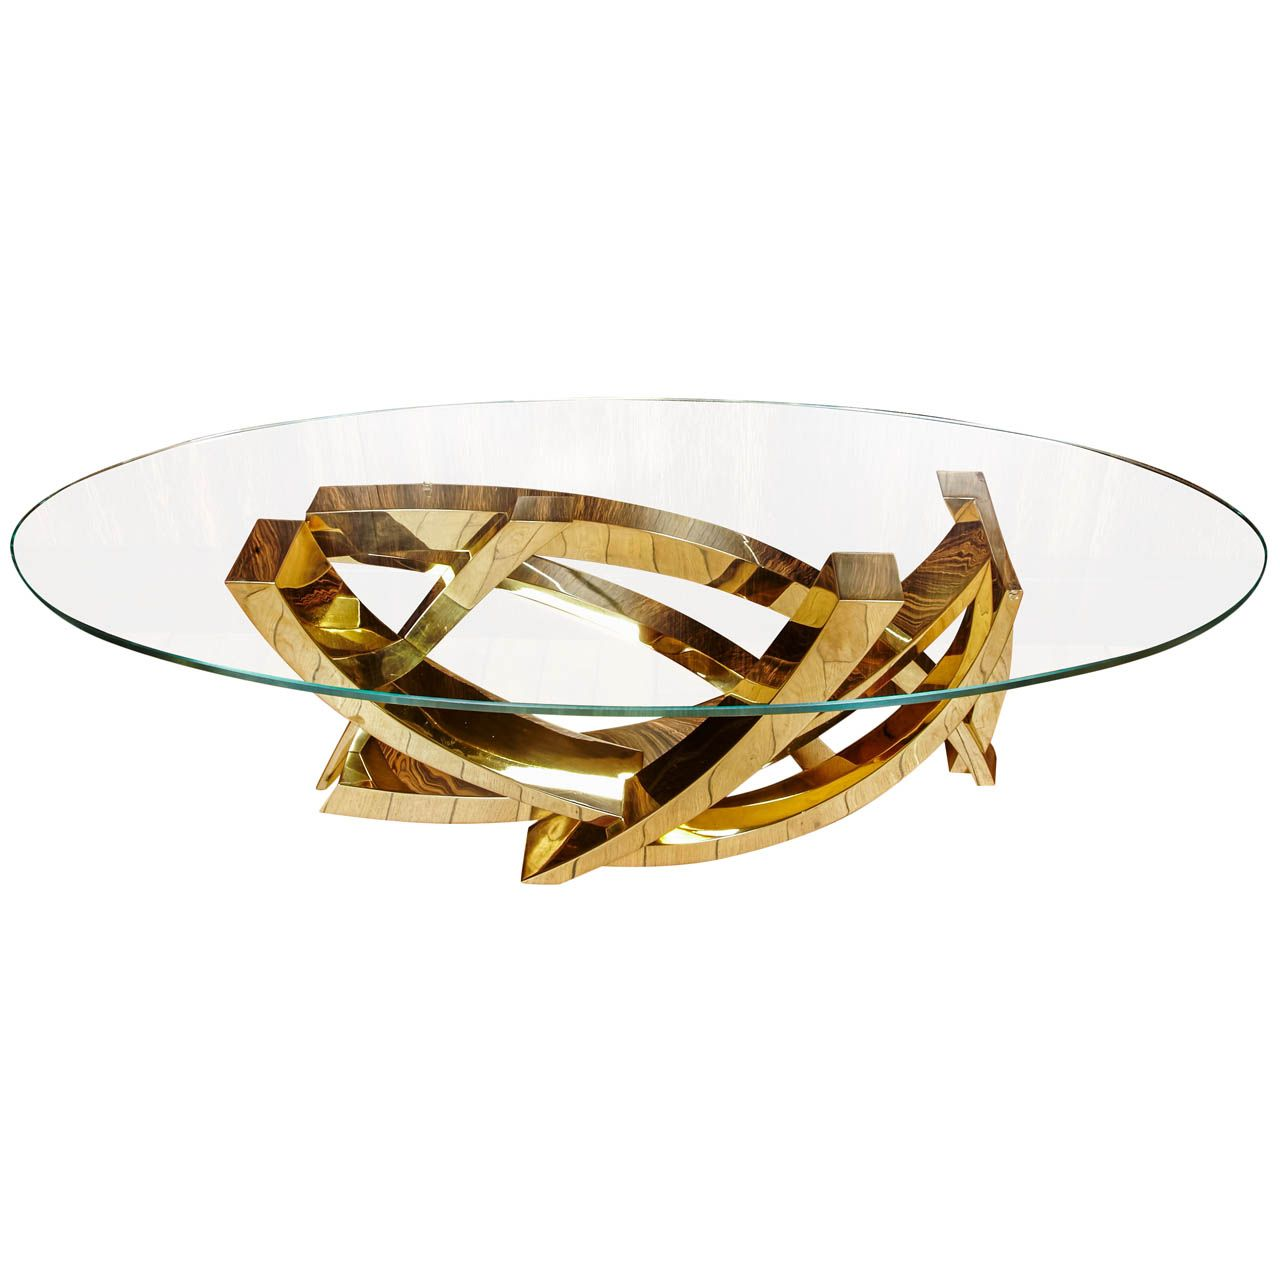 Impressive Coffee Table In Polished Brass By Claude Mercier Sculptor And Designer 70 S Coffee Table Design Brass Coffee Table Coffee Table To Dining Table